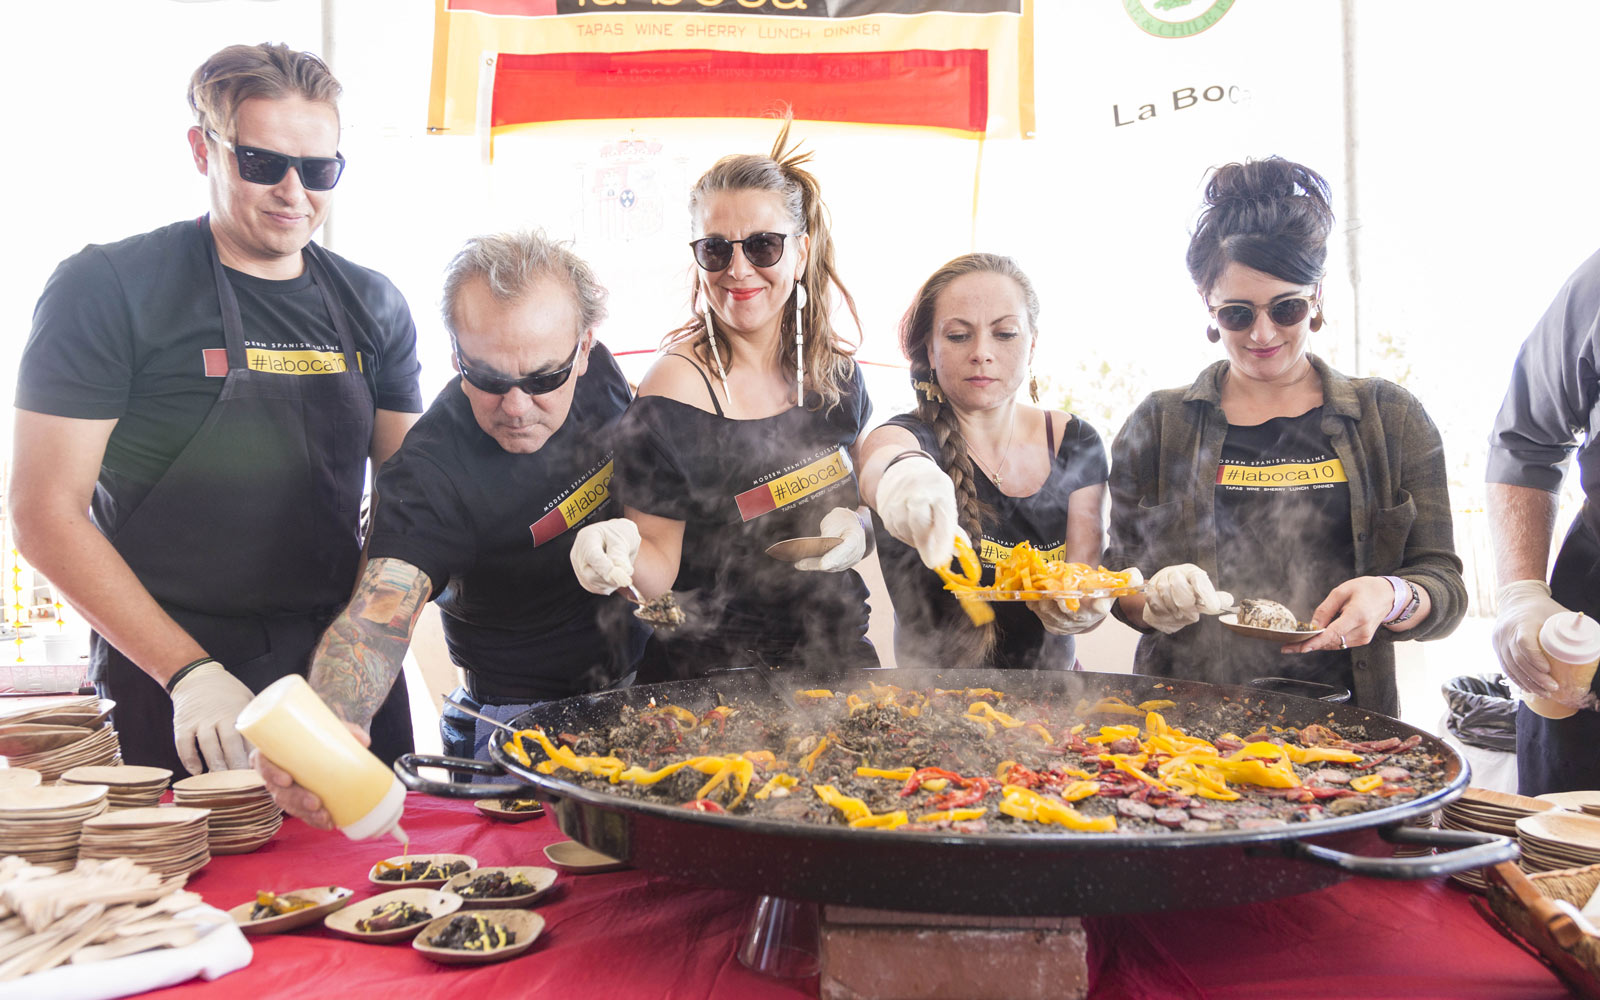 Santa Fe Wine and Chile Fiesta in New Mexico